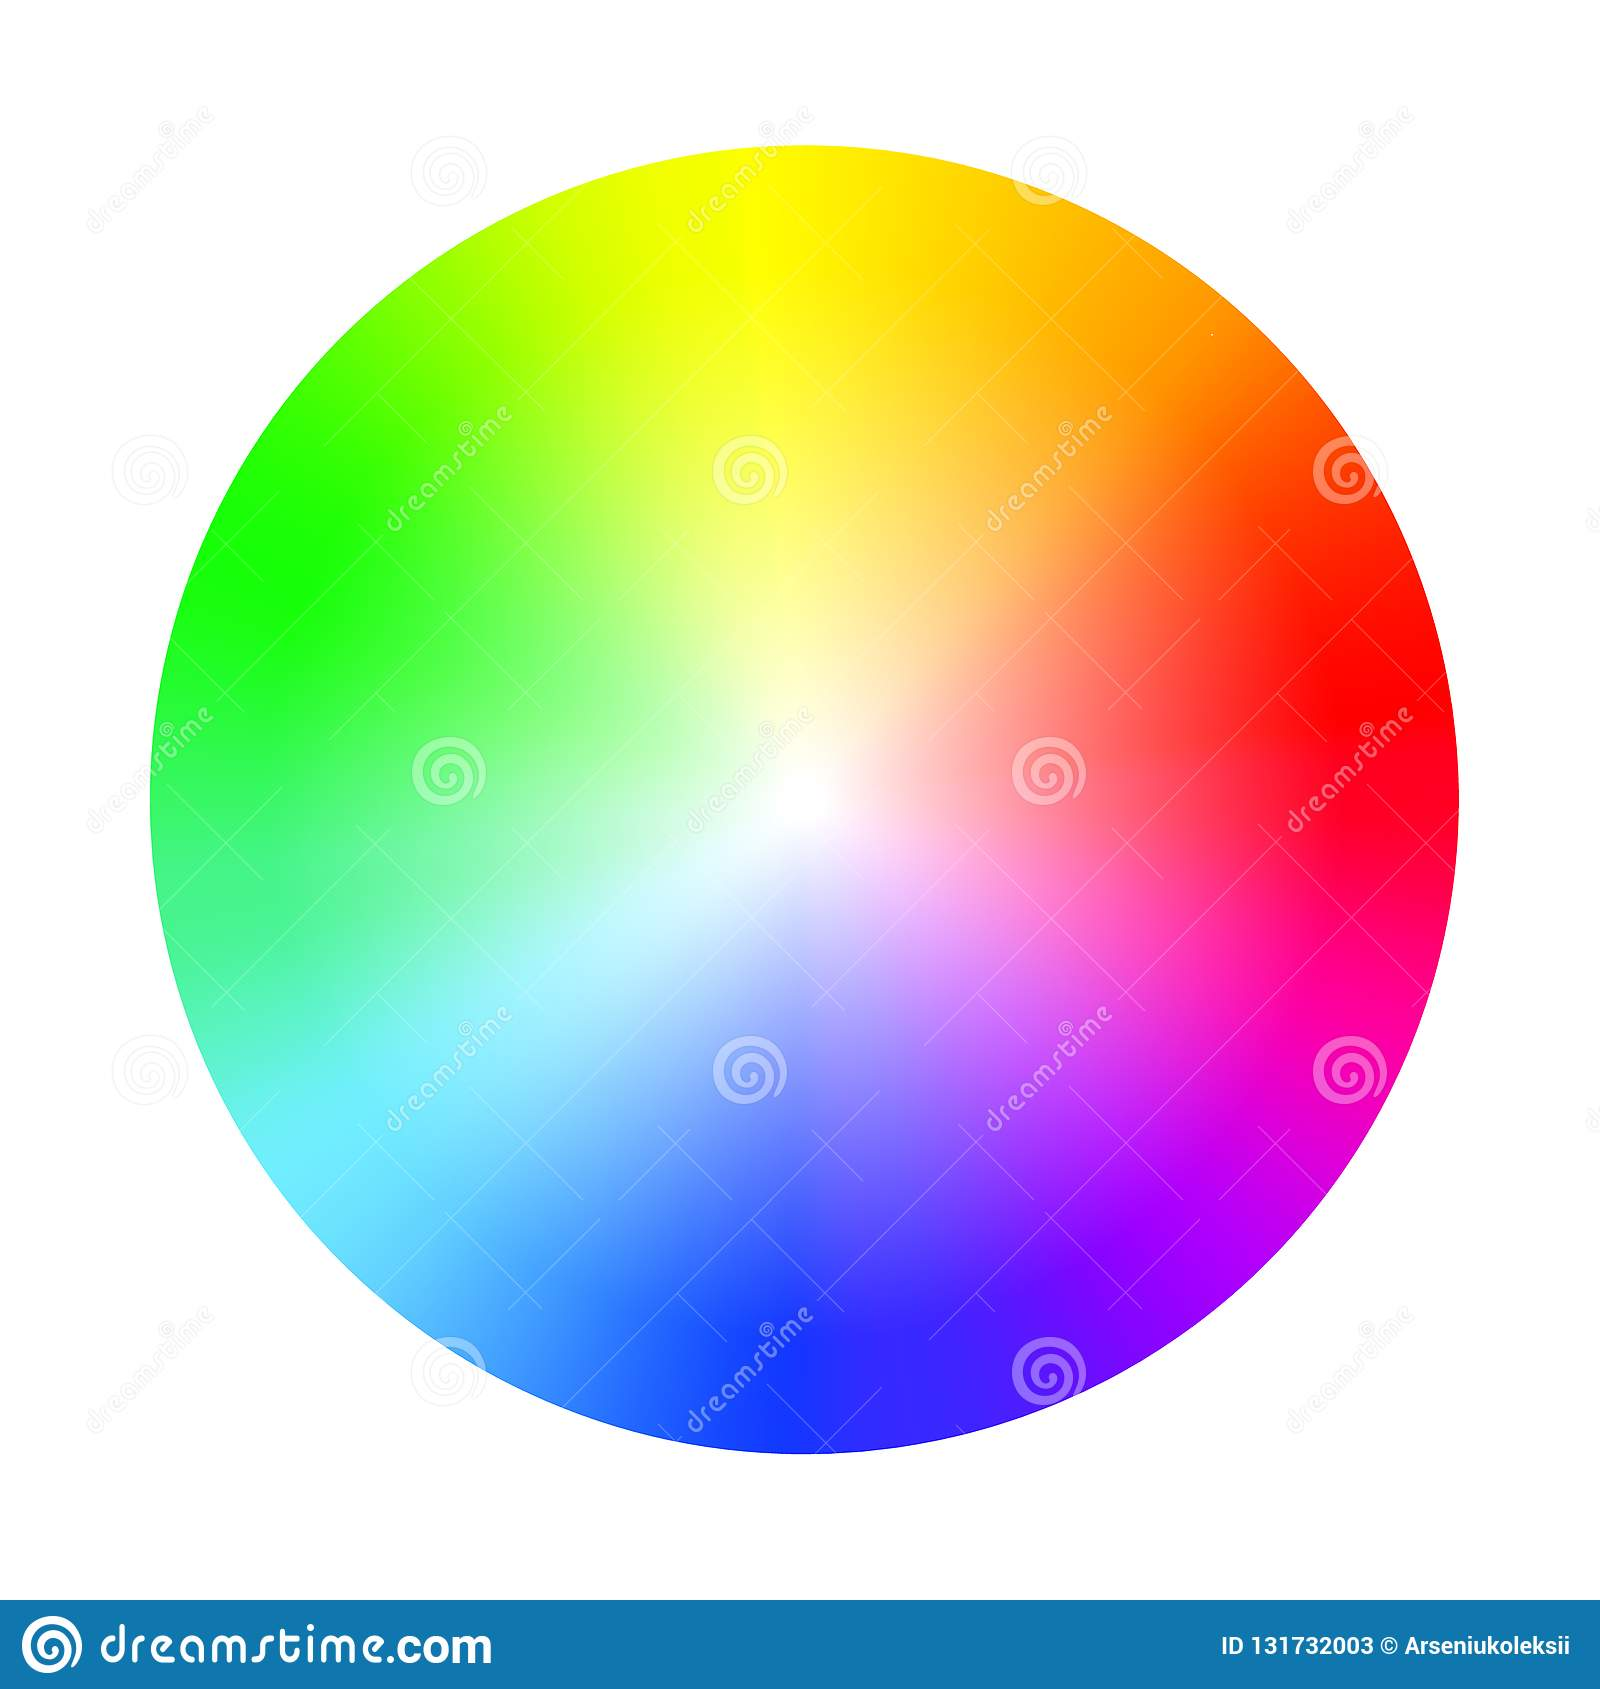 Color Wheel Guide With Saturation And Highlight Colour Picker